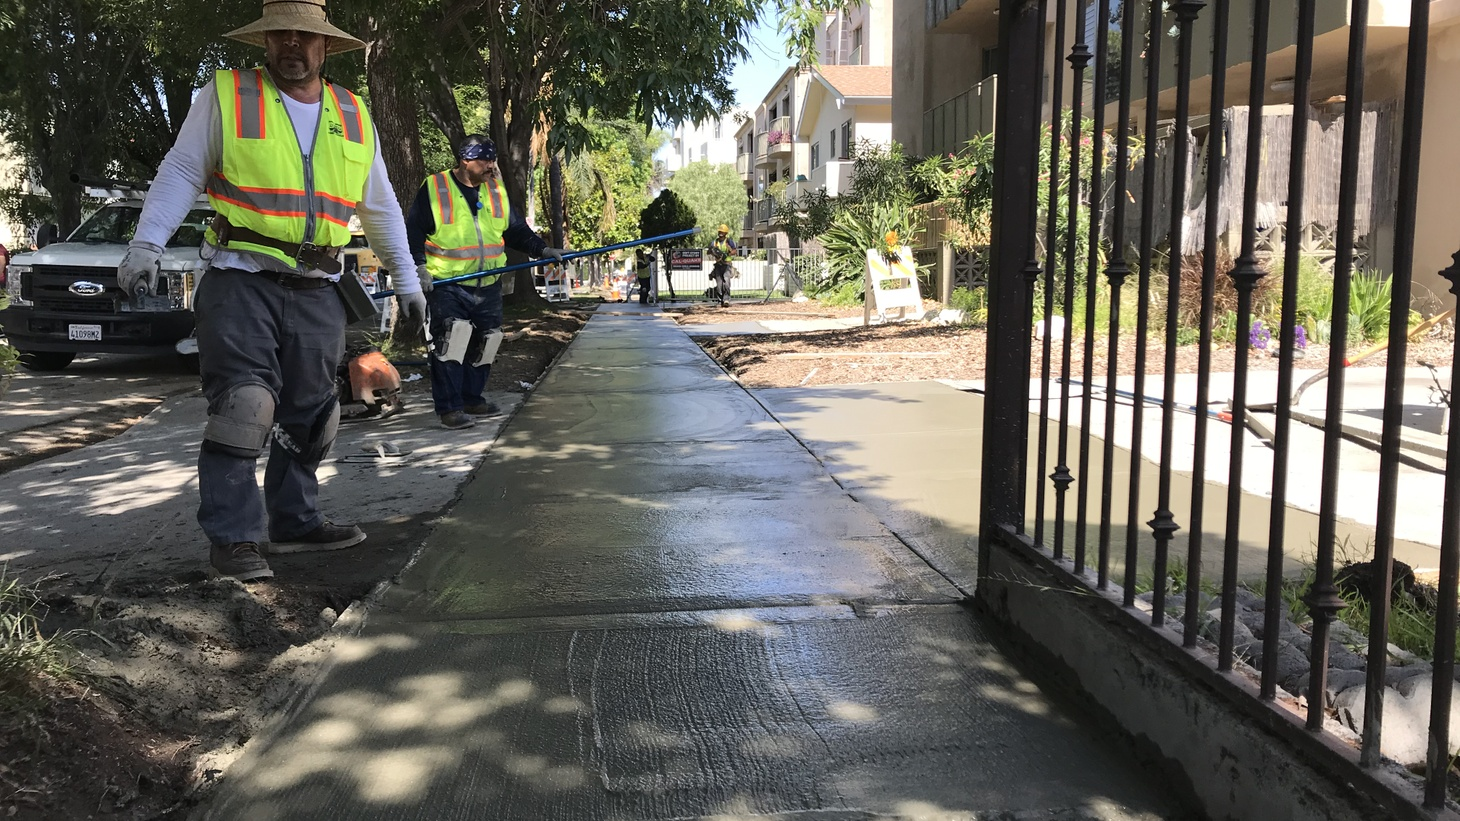 Construction crews contracted by the City of Los Angeles work to repair a stretch of sidewalk in the Pico-Robertson neighborhood of LA. The project is one of hundreds that the city is hoping to fix in the coming years.